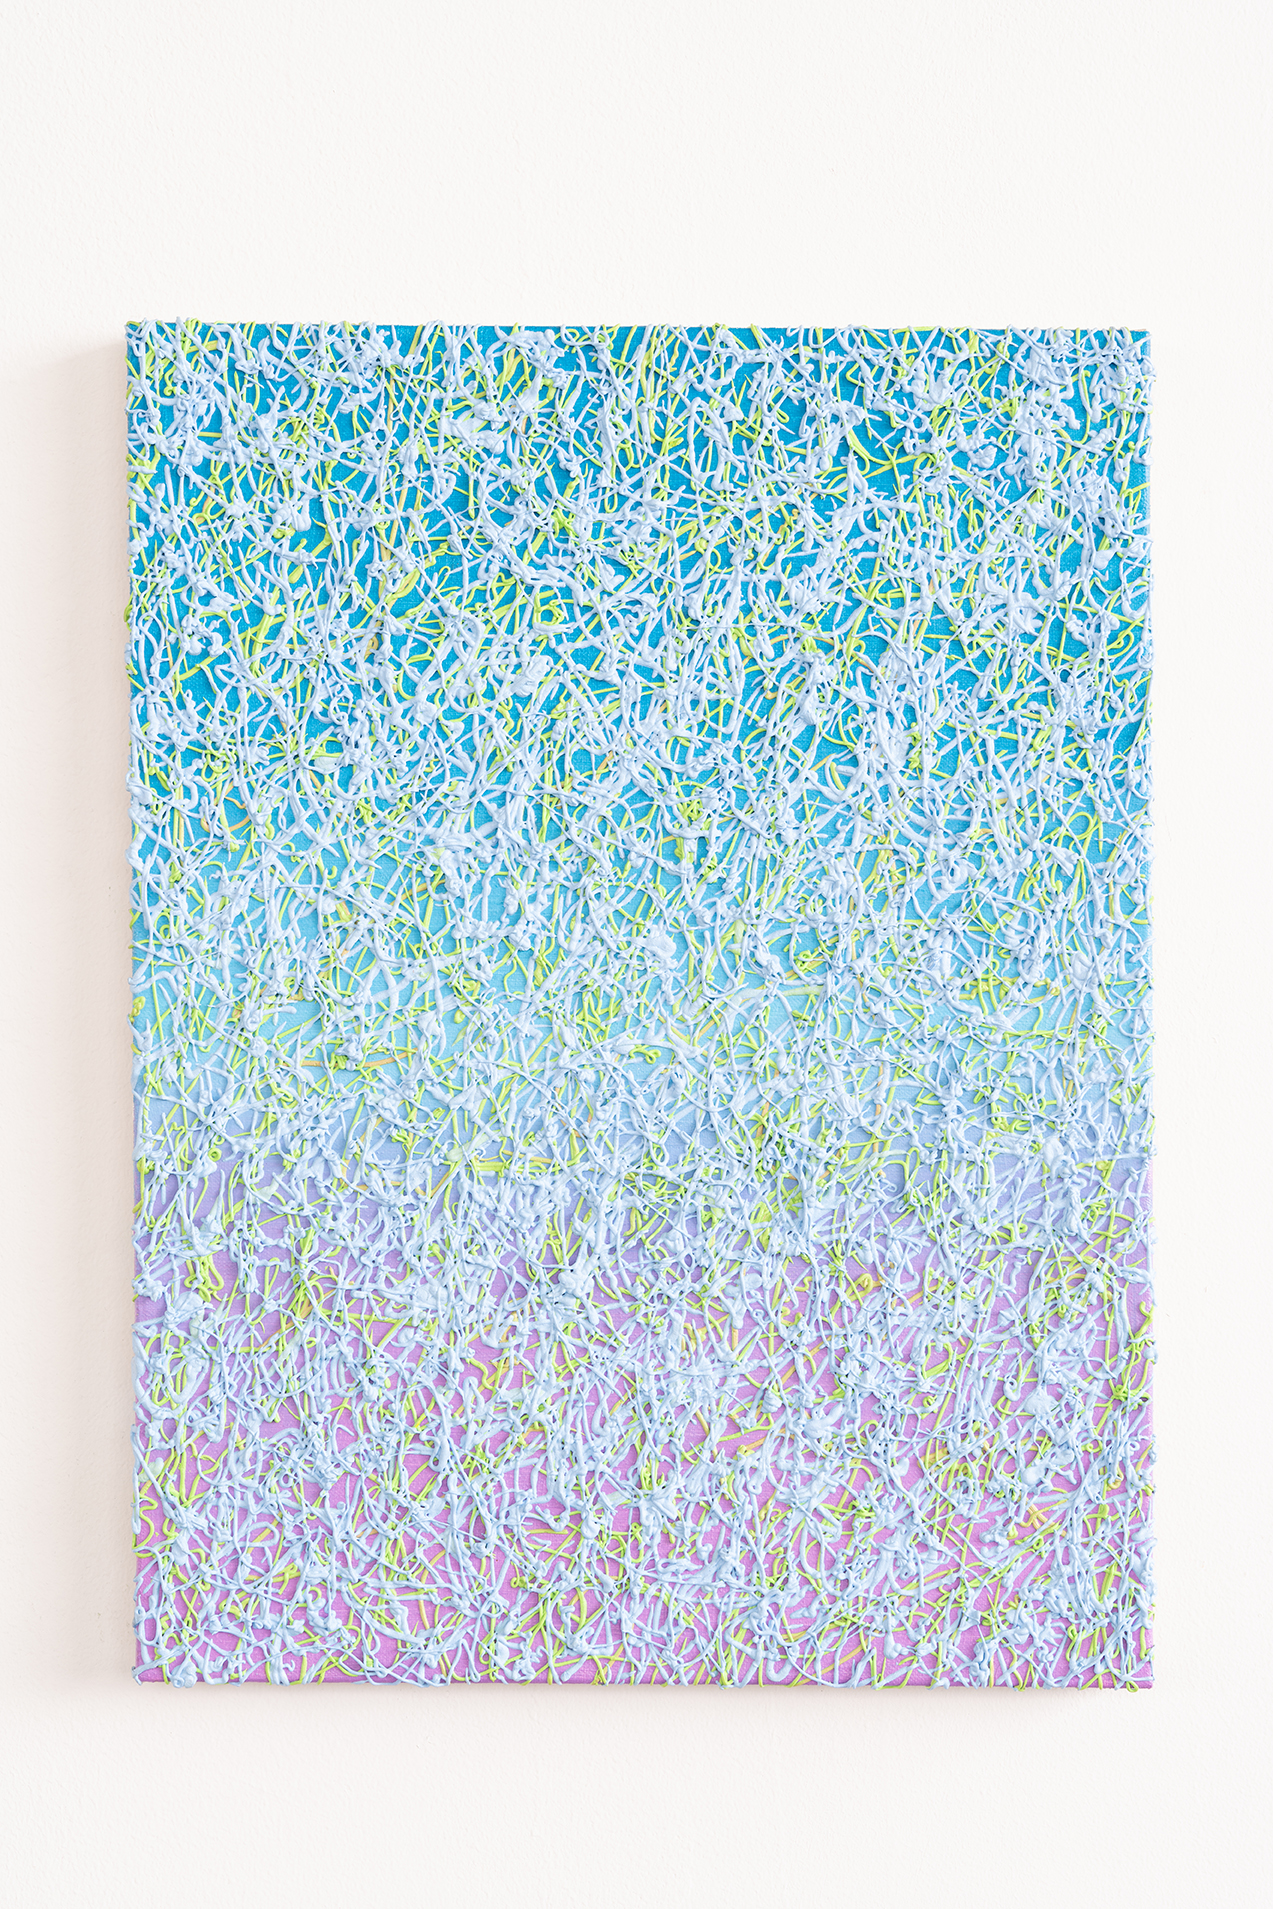 Philip Hardy   Noodle Painting (Aqua)  2018  Photo credit Rob Ventura